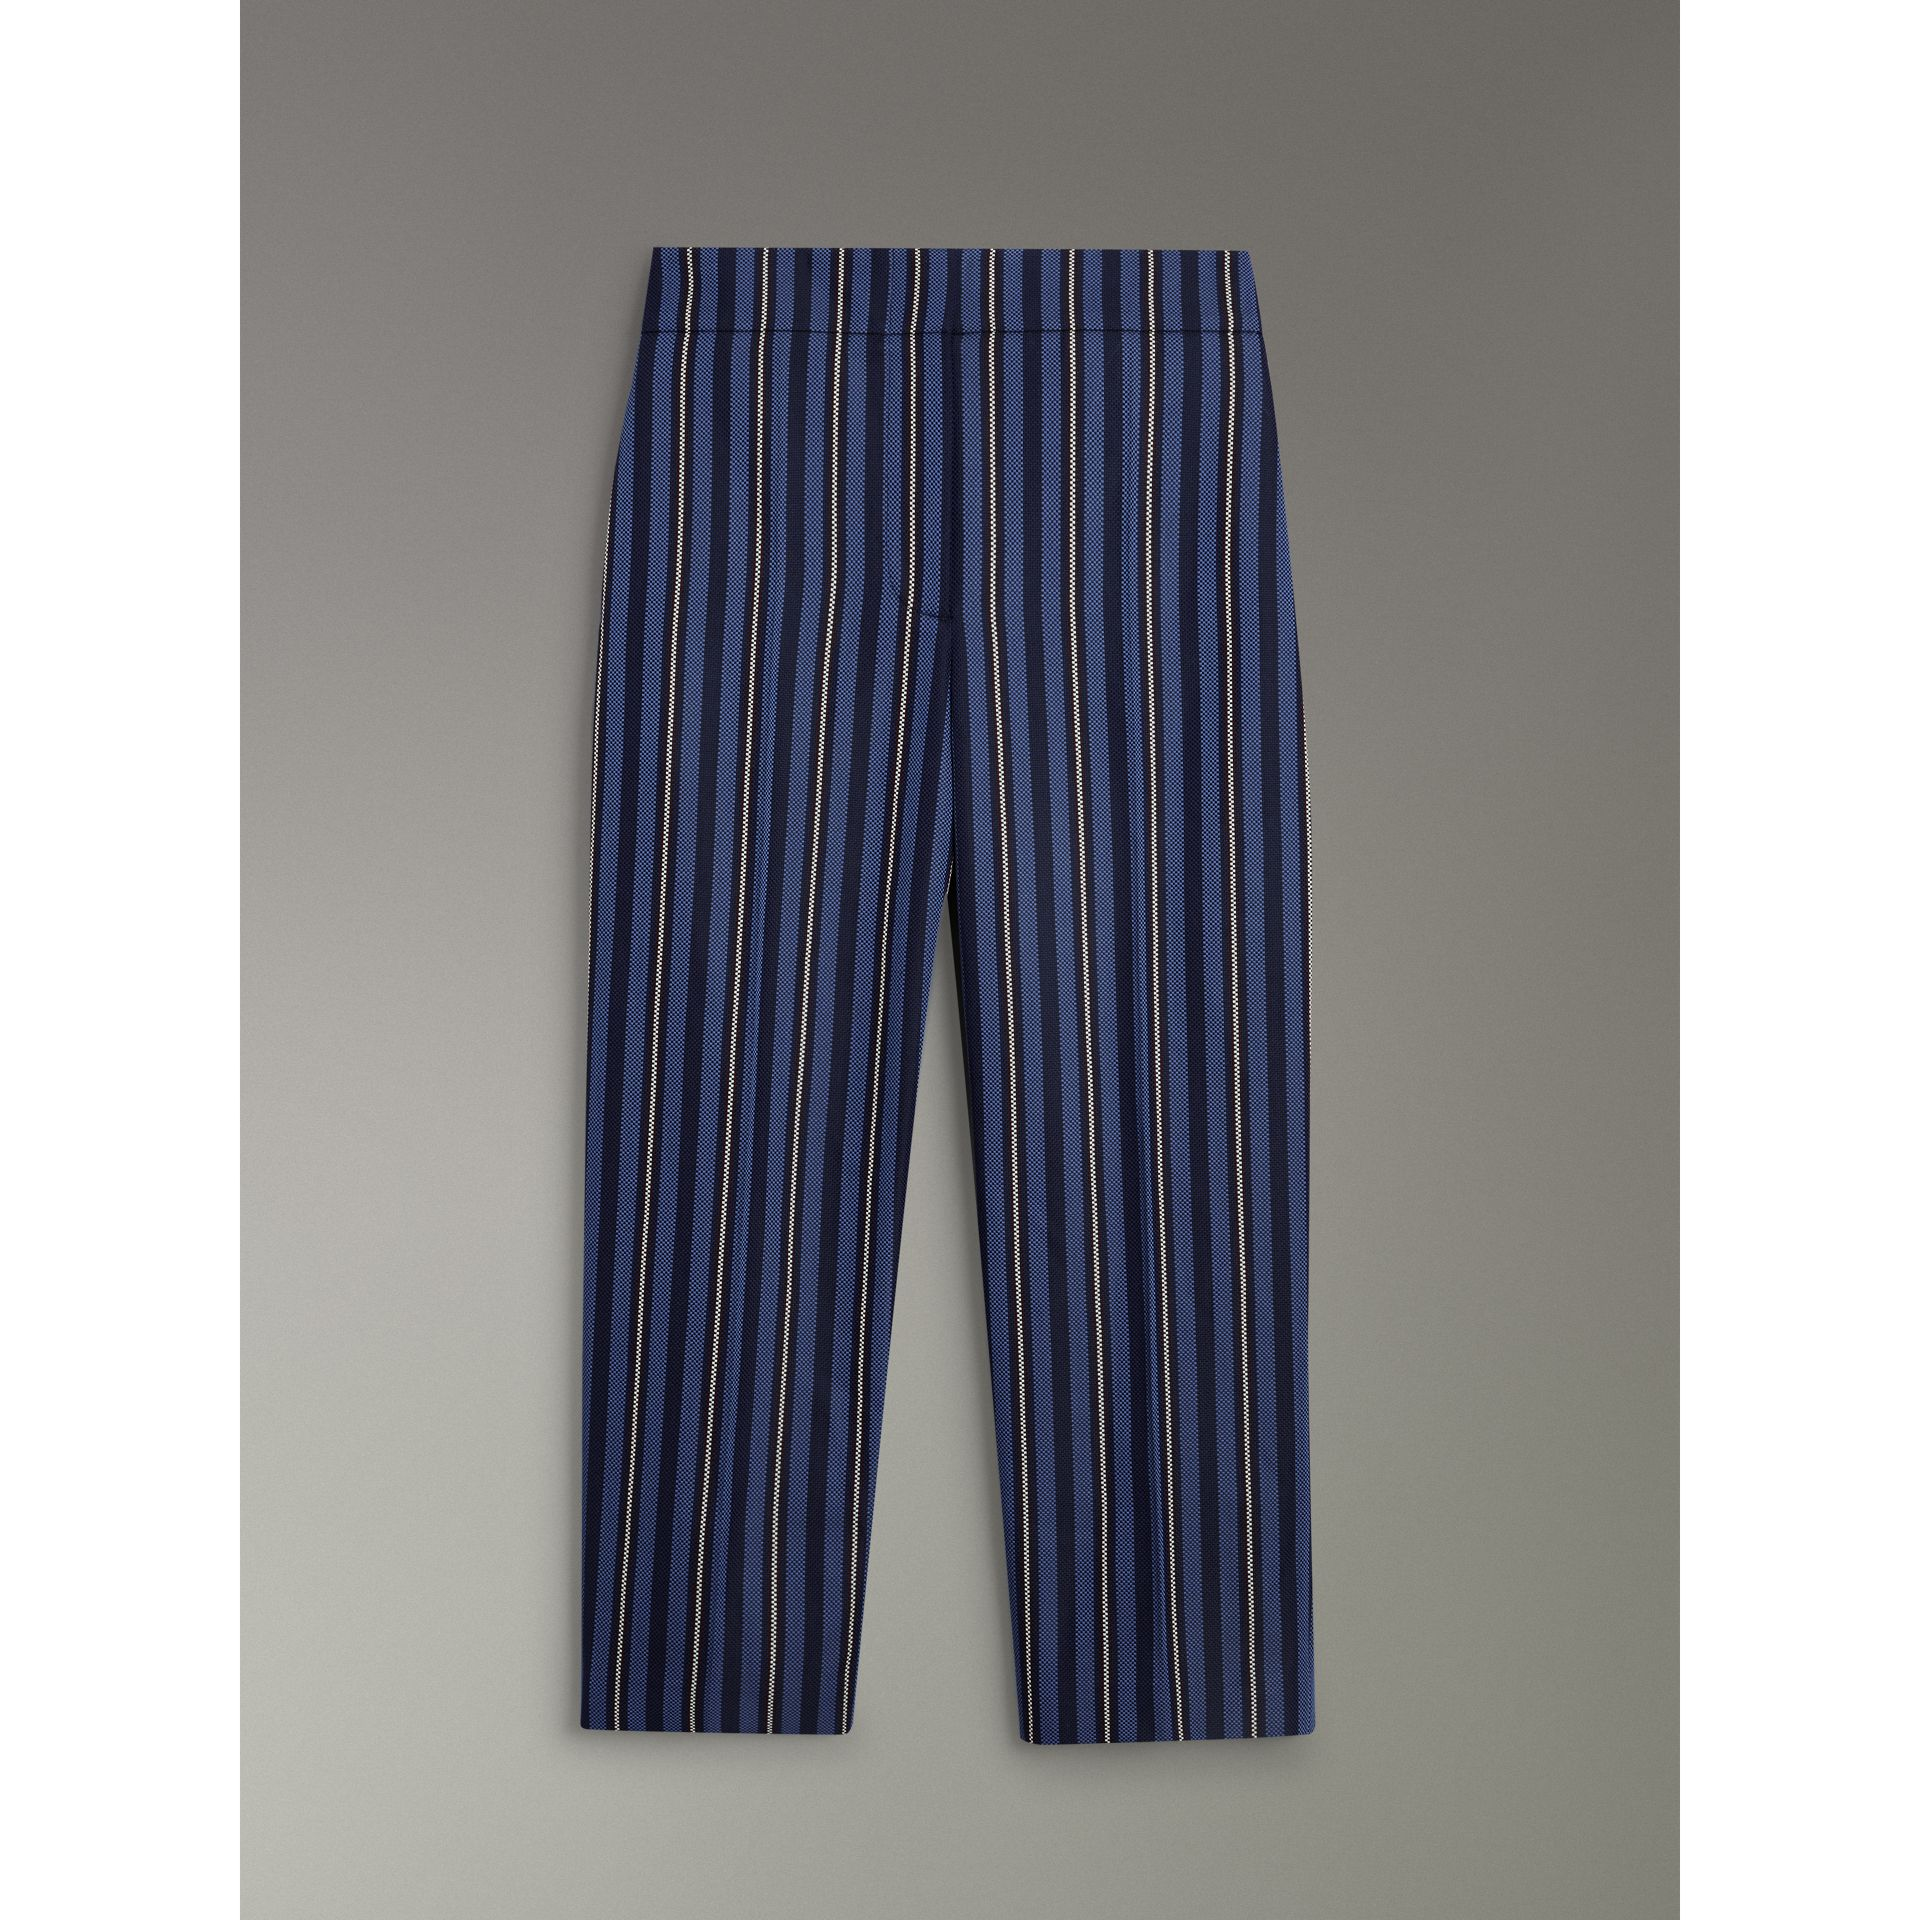 Striped Wool Blend Cropped Trousers in Navy/light Blue - Women | Burberry - gallery image 3